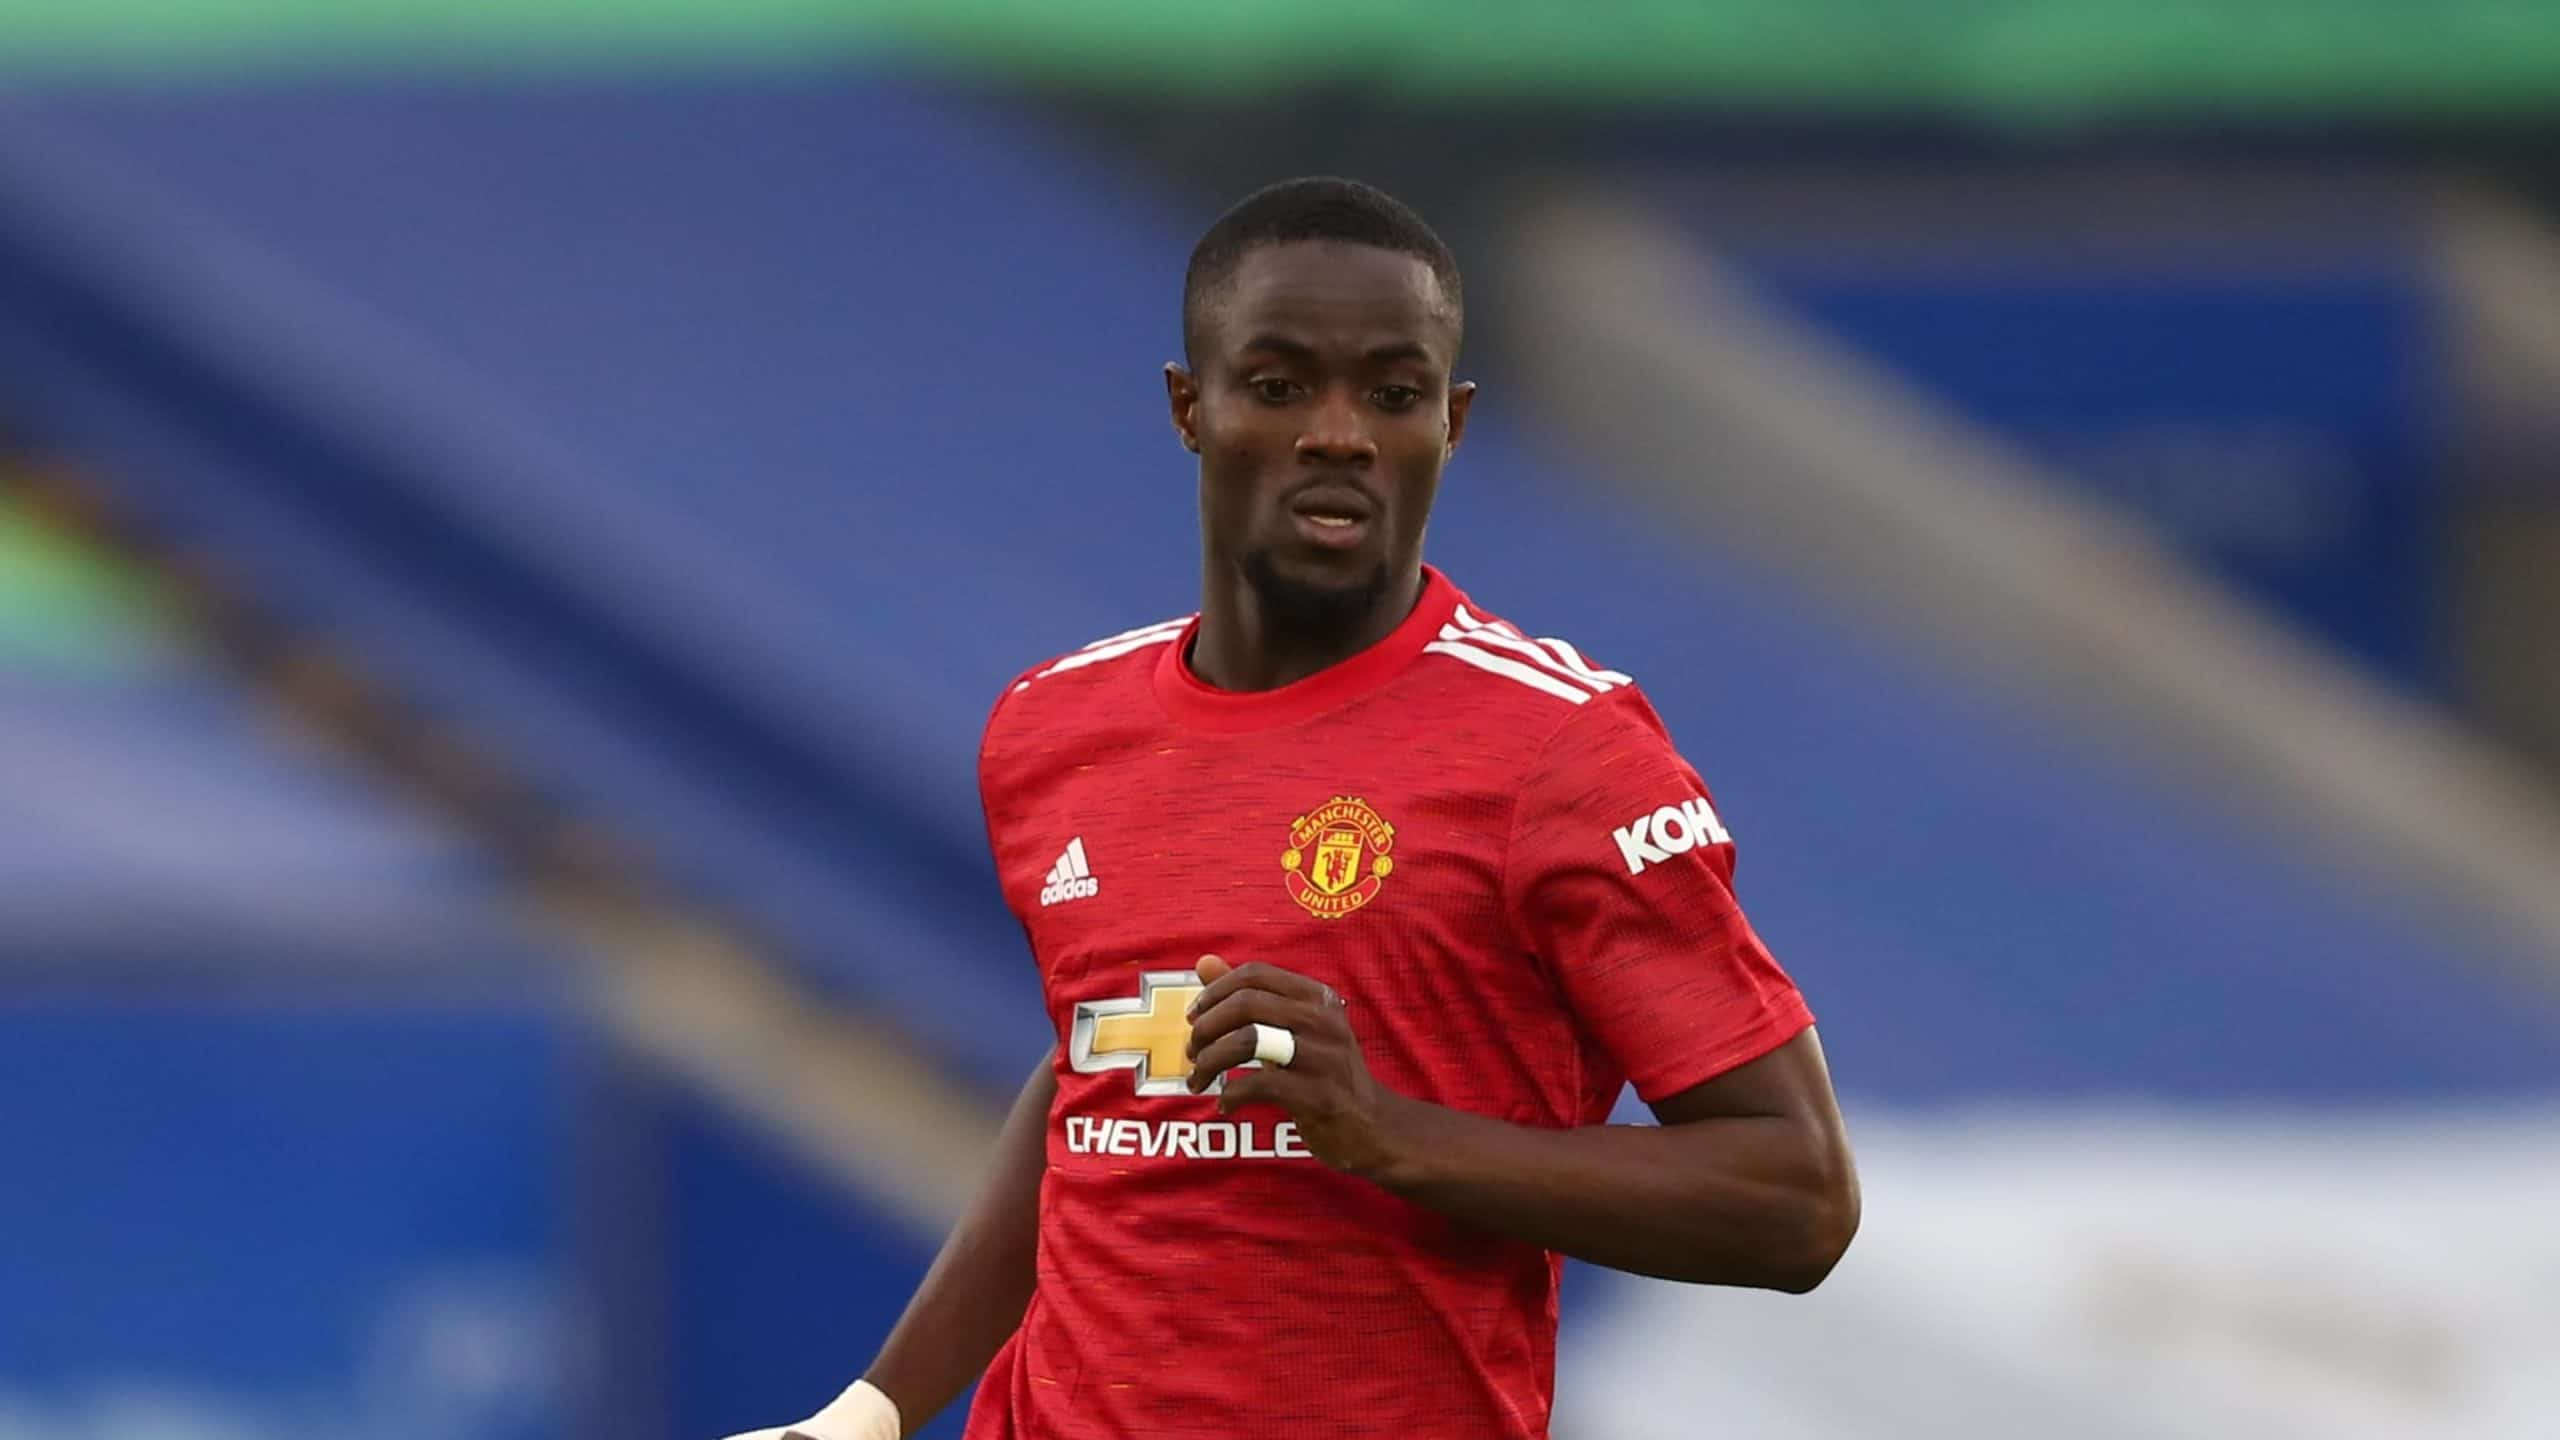 eric-bailly-planning-to-reject-recent-manchester-united-contract.jpg